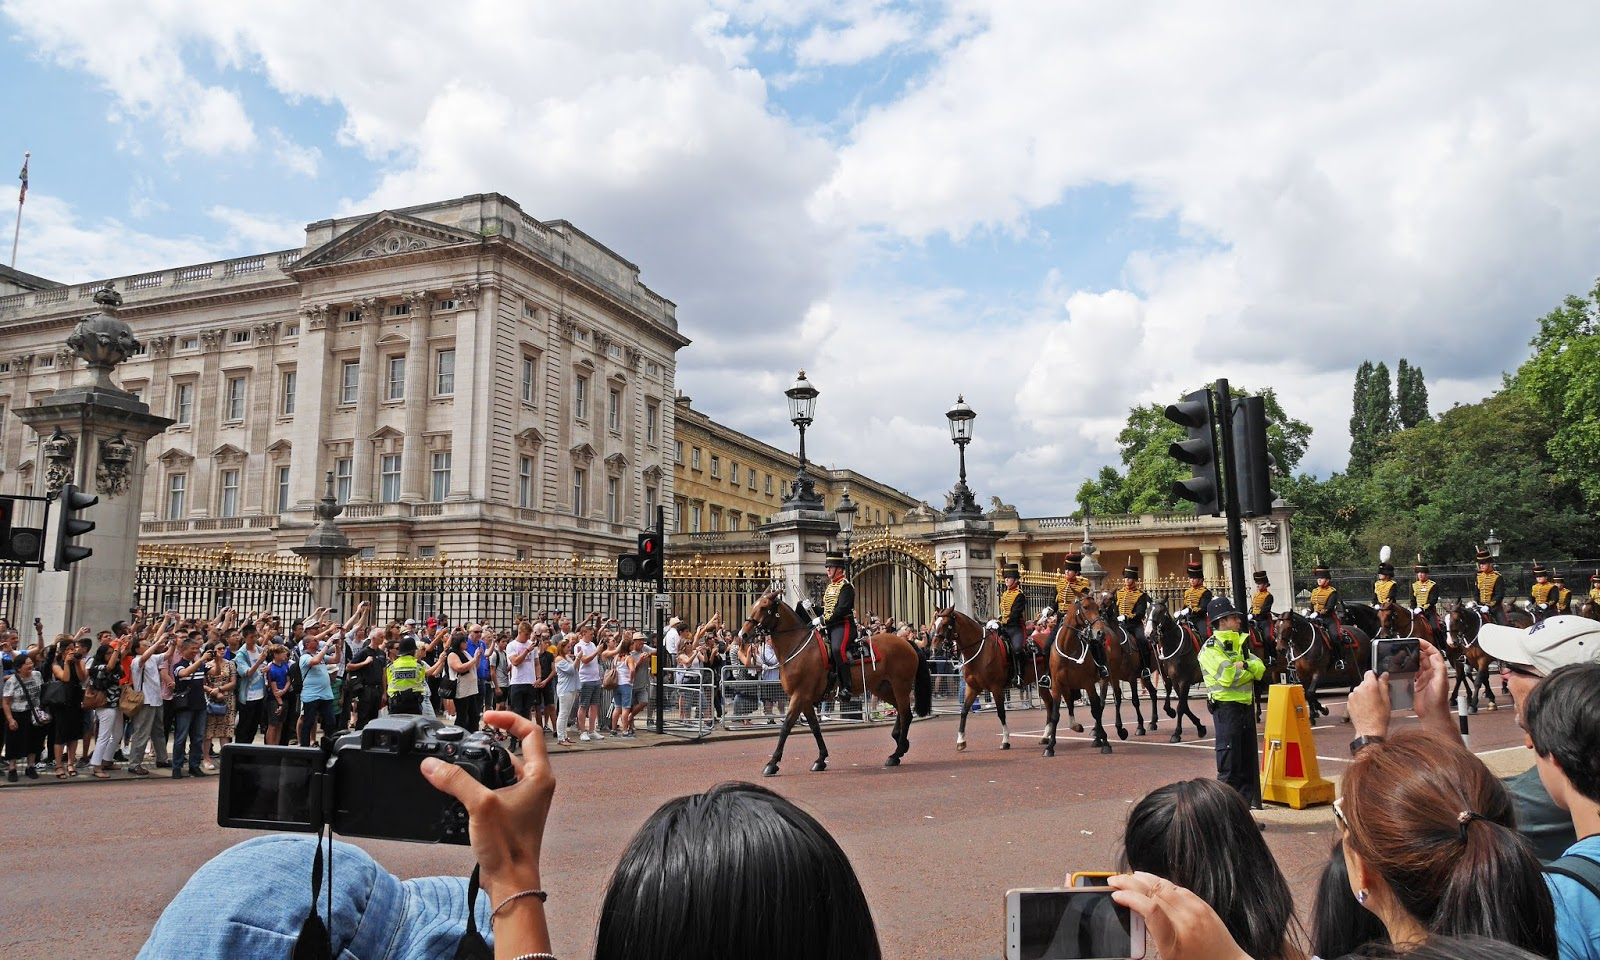 Watching the Changing of the Guard at Buckingham Palace